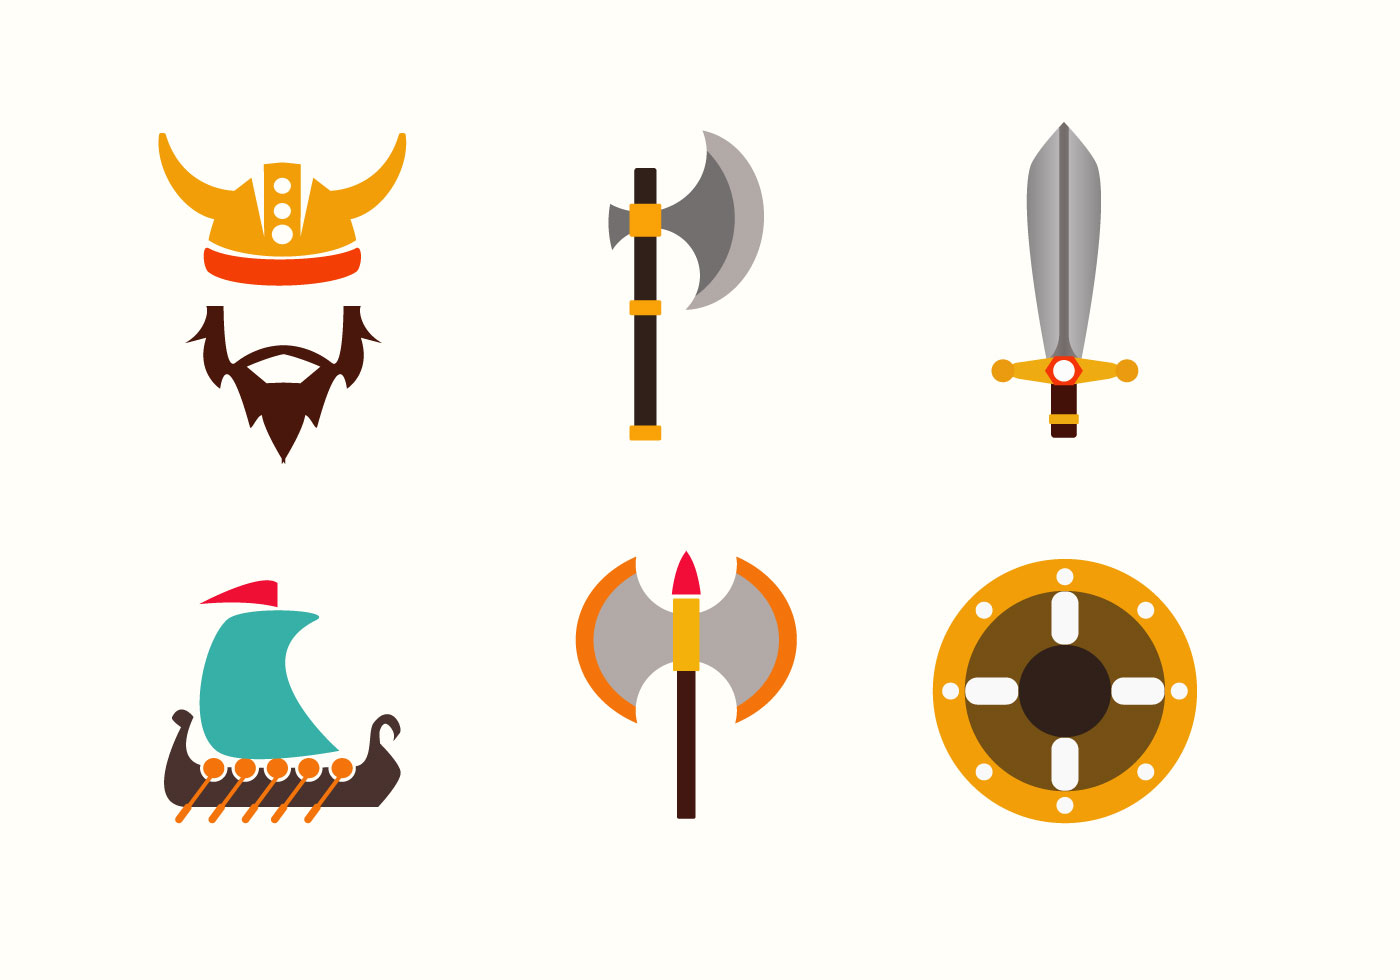 Viking Symbols Vector - Download Free Vector Art, Stock ...